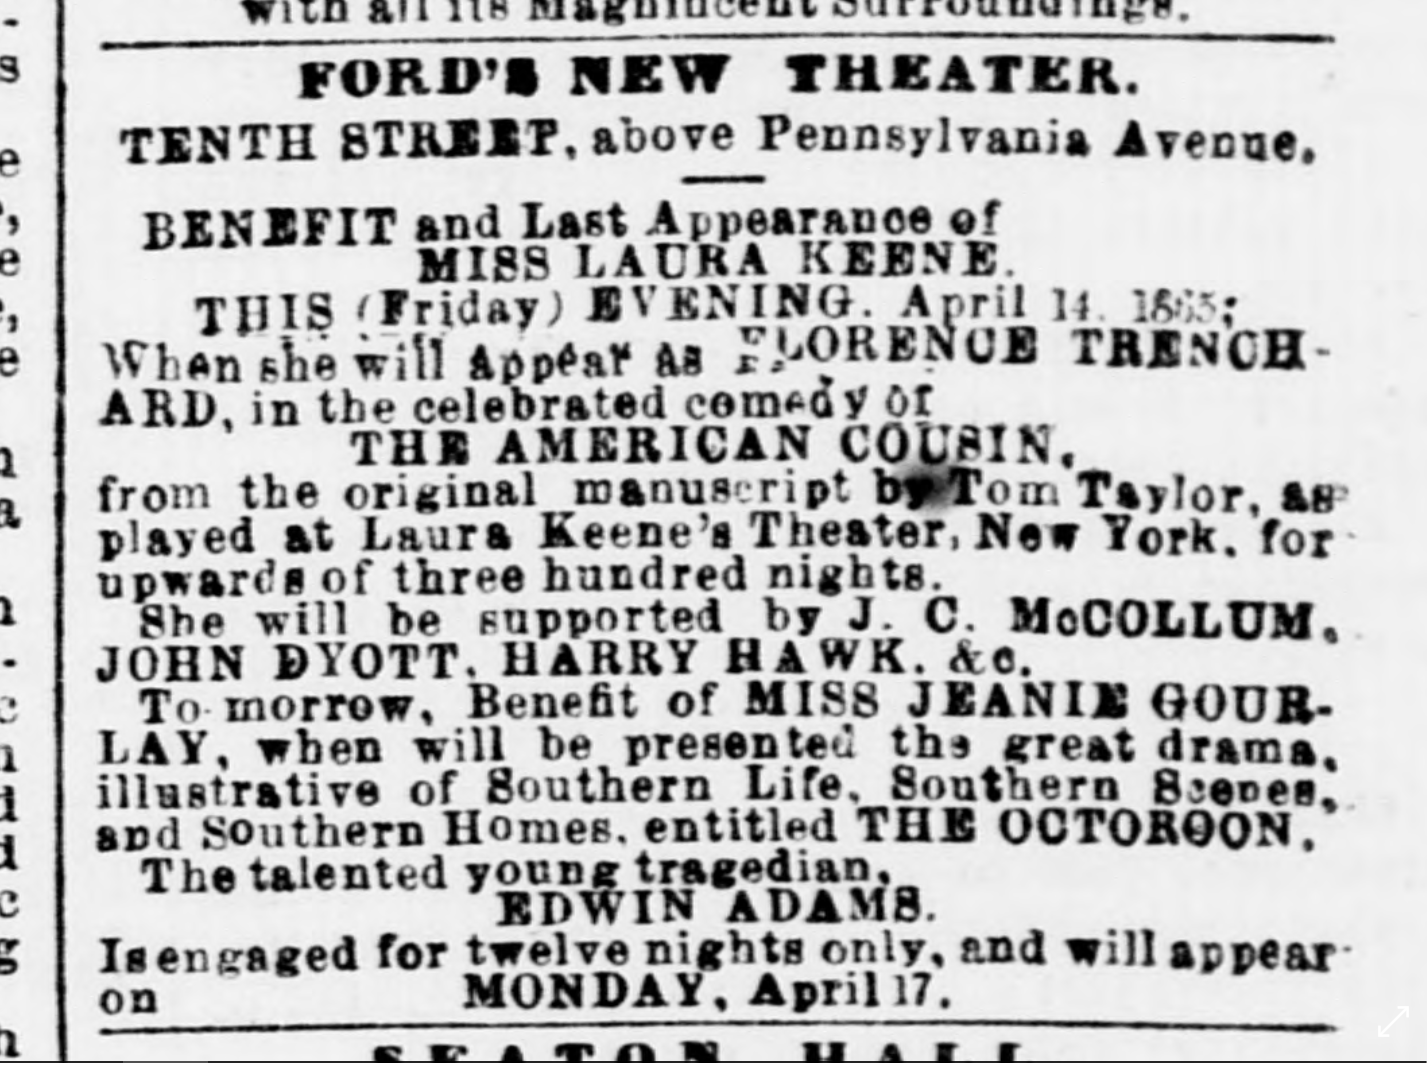 Advertisement for American Cousin playing at Ford's Theatre on April 14, 1865, appearing on page 1 of the Washington Evening Star that day. The day Abraham Lincoln was shot.